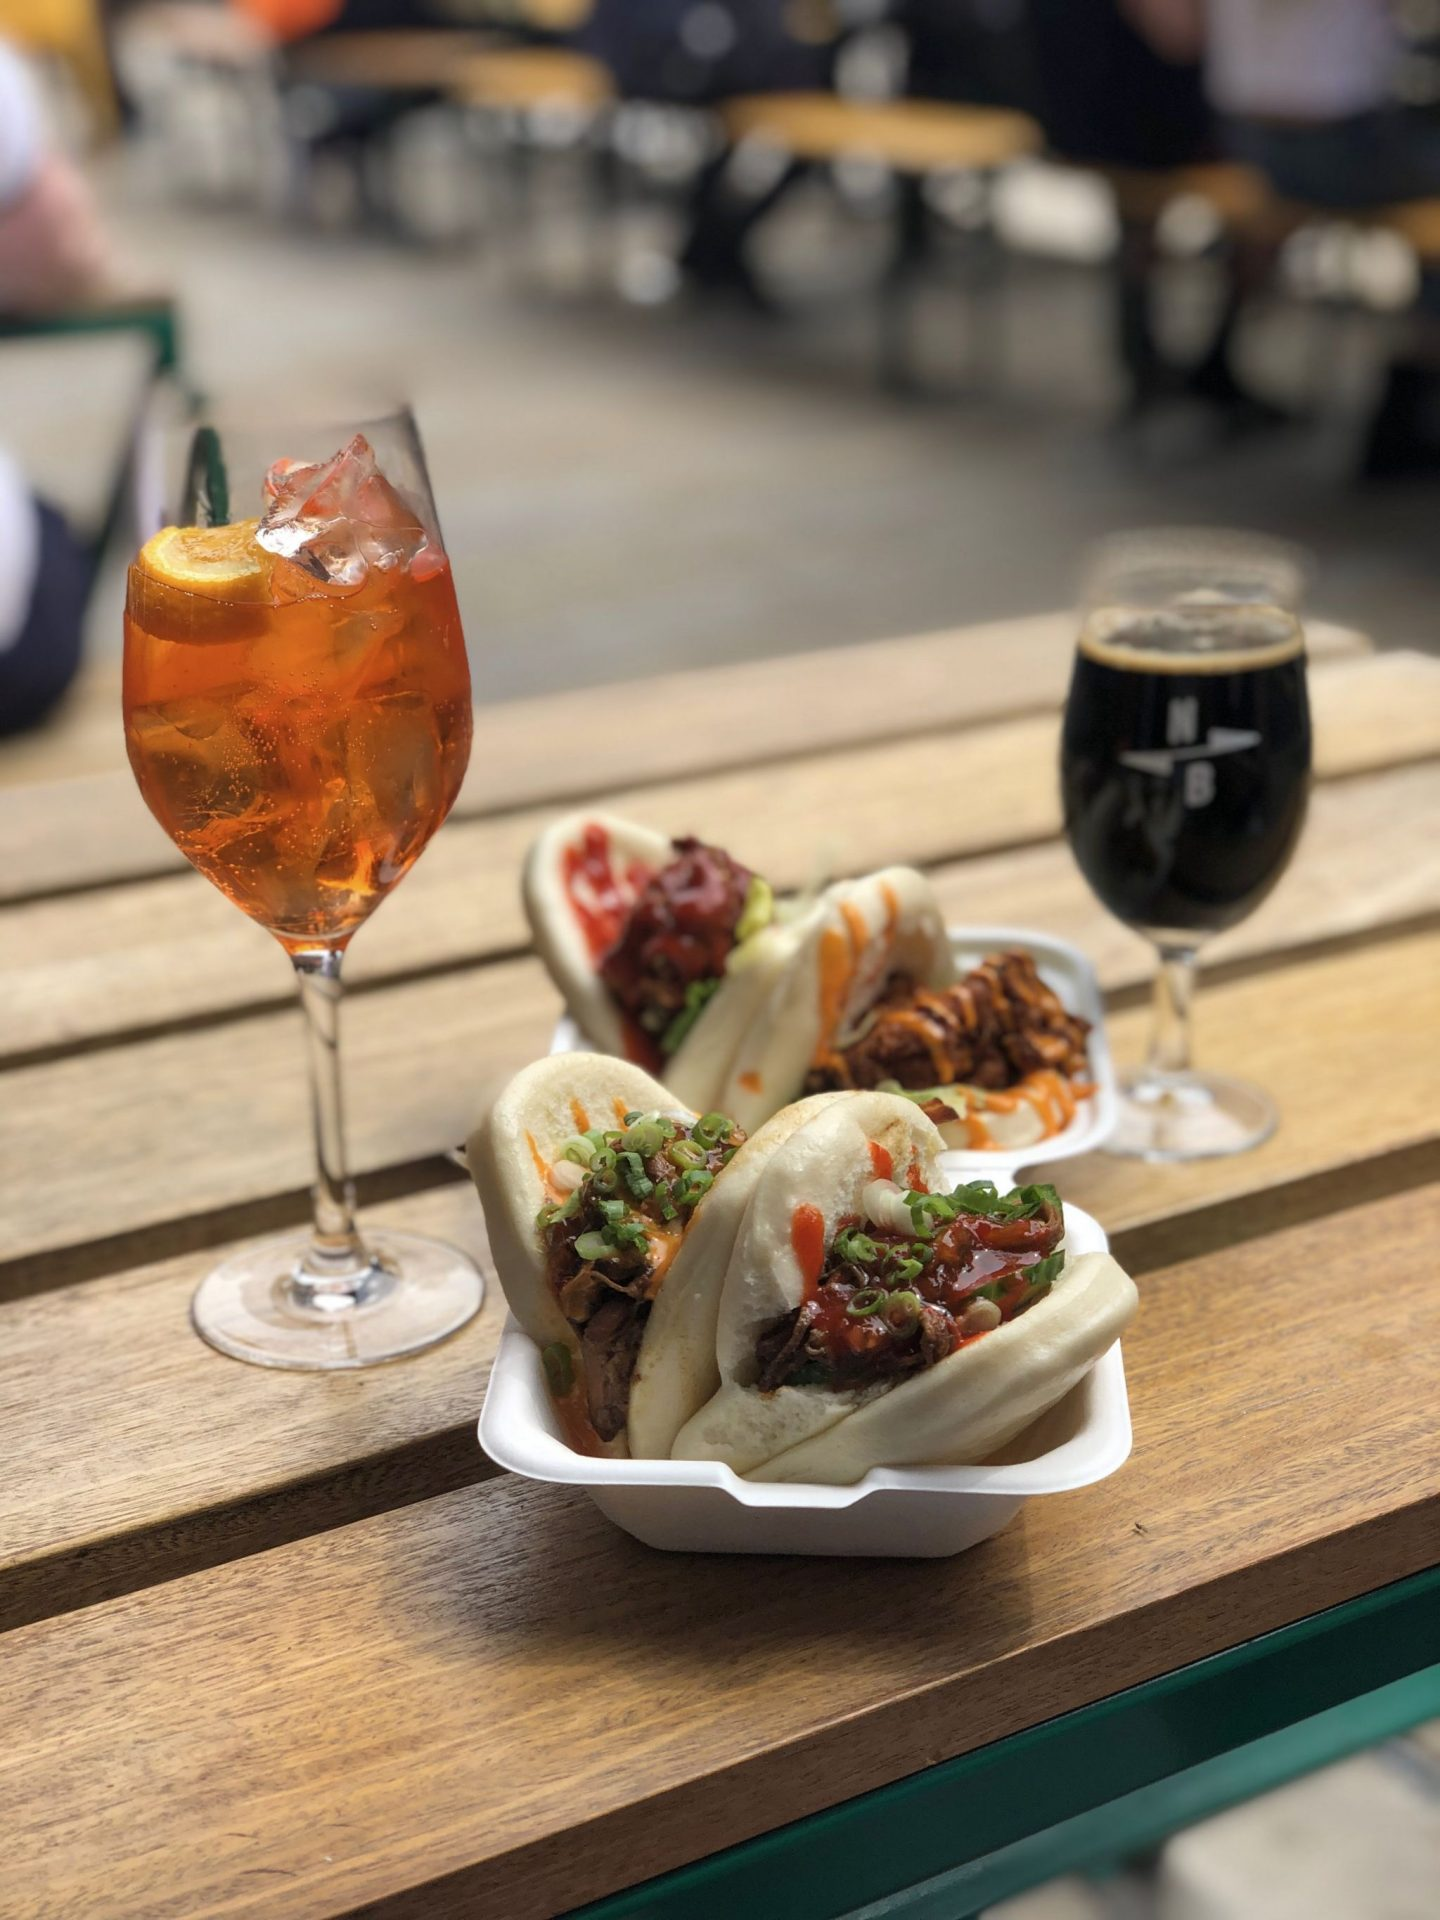 Places to eat in Leeds: an image for four bao buns on a wooden bench with an aperol spritz and a beer just out of focus behind